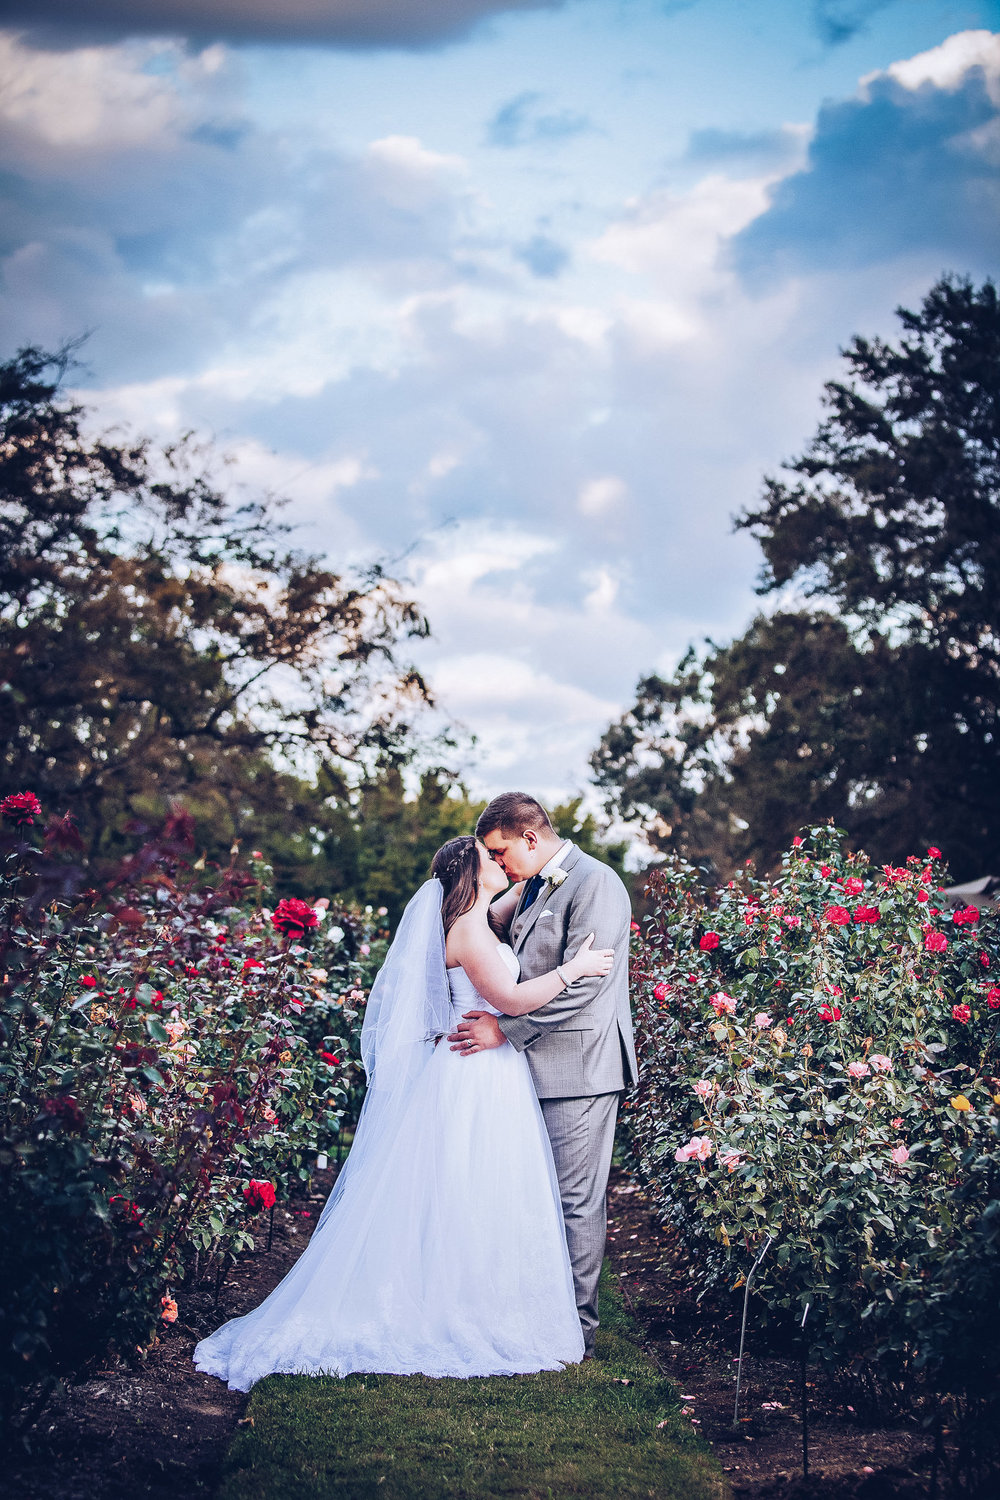 norfolk-botanical-garden-wedding-photograph-samantha-greg.jpg